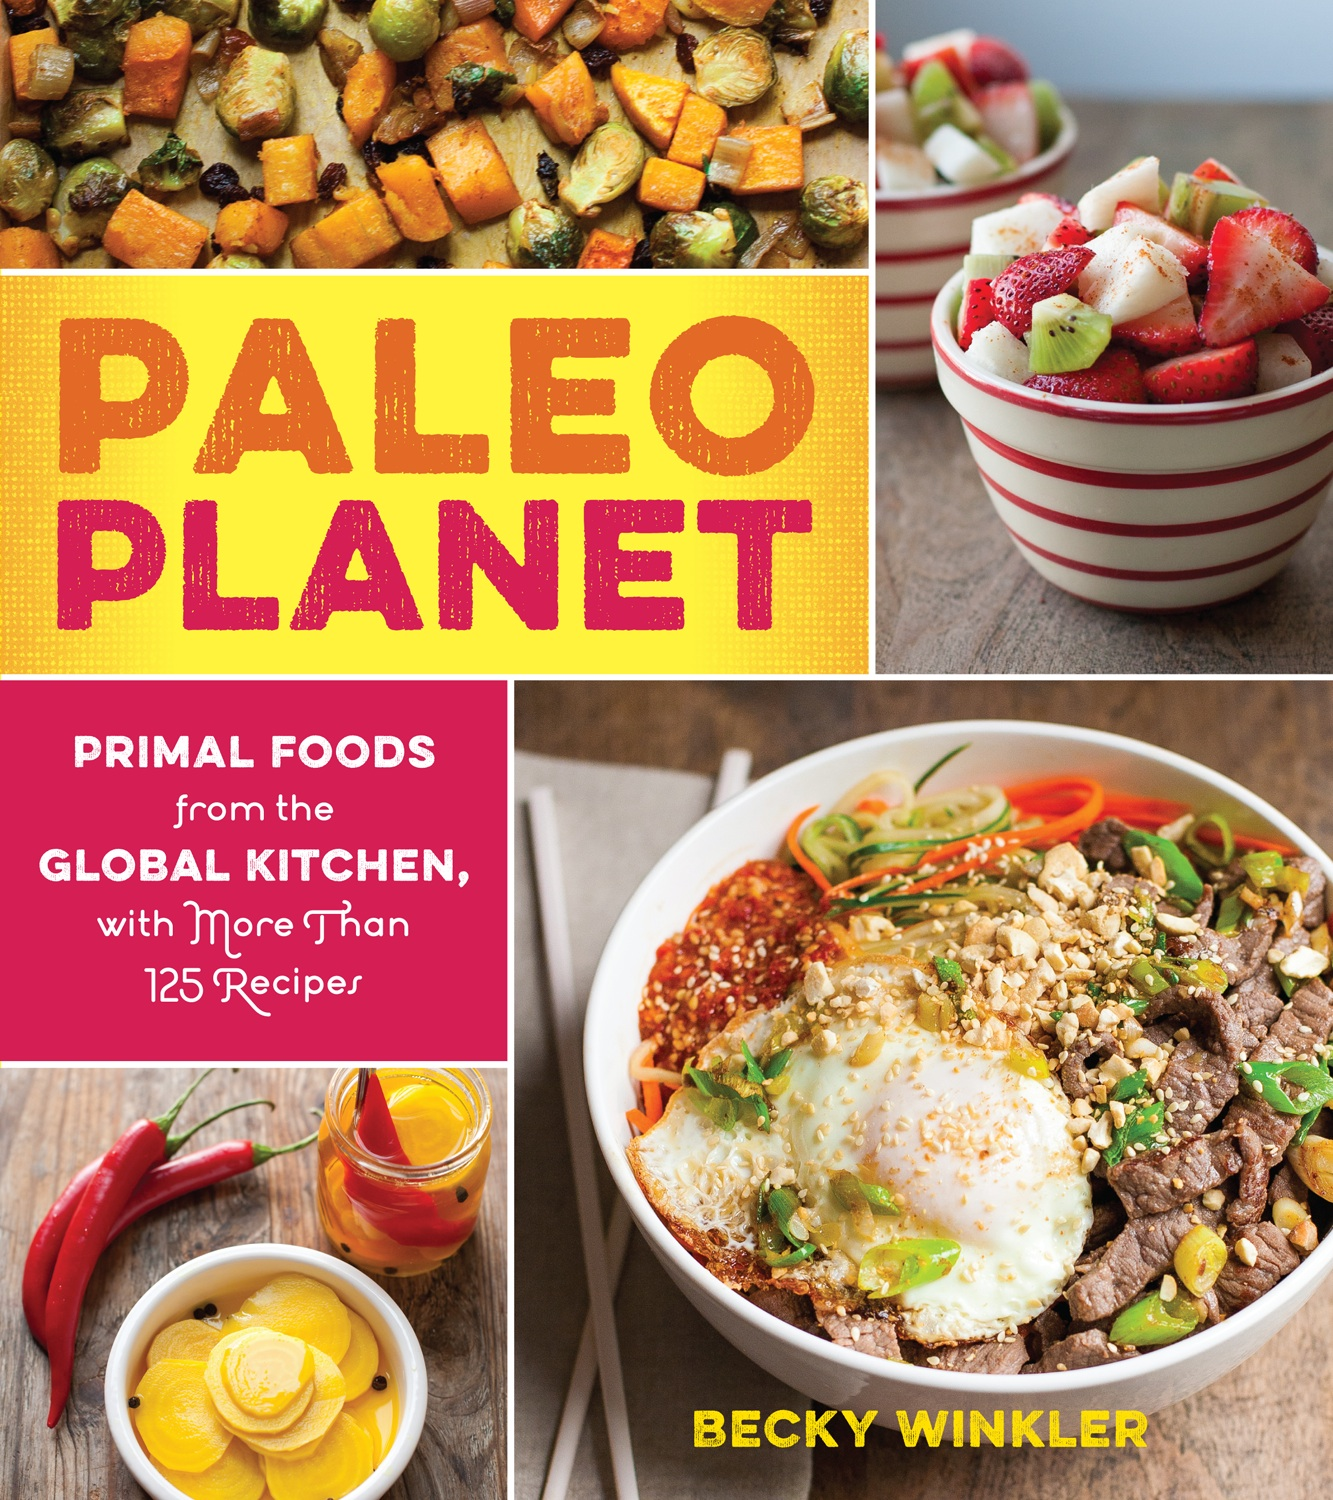 Paleo Planet by Becky Winkler contains over 80 Whole30-compliant recipes